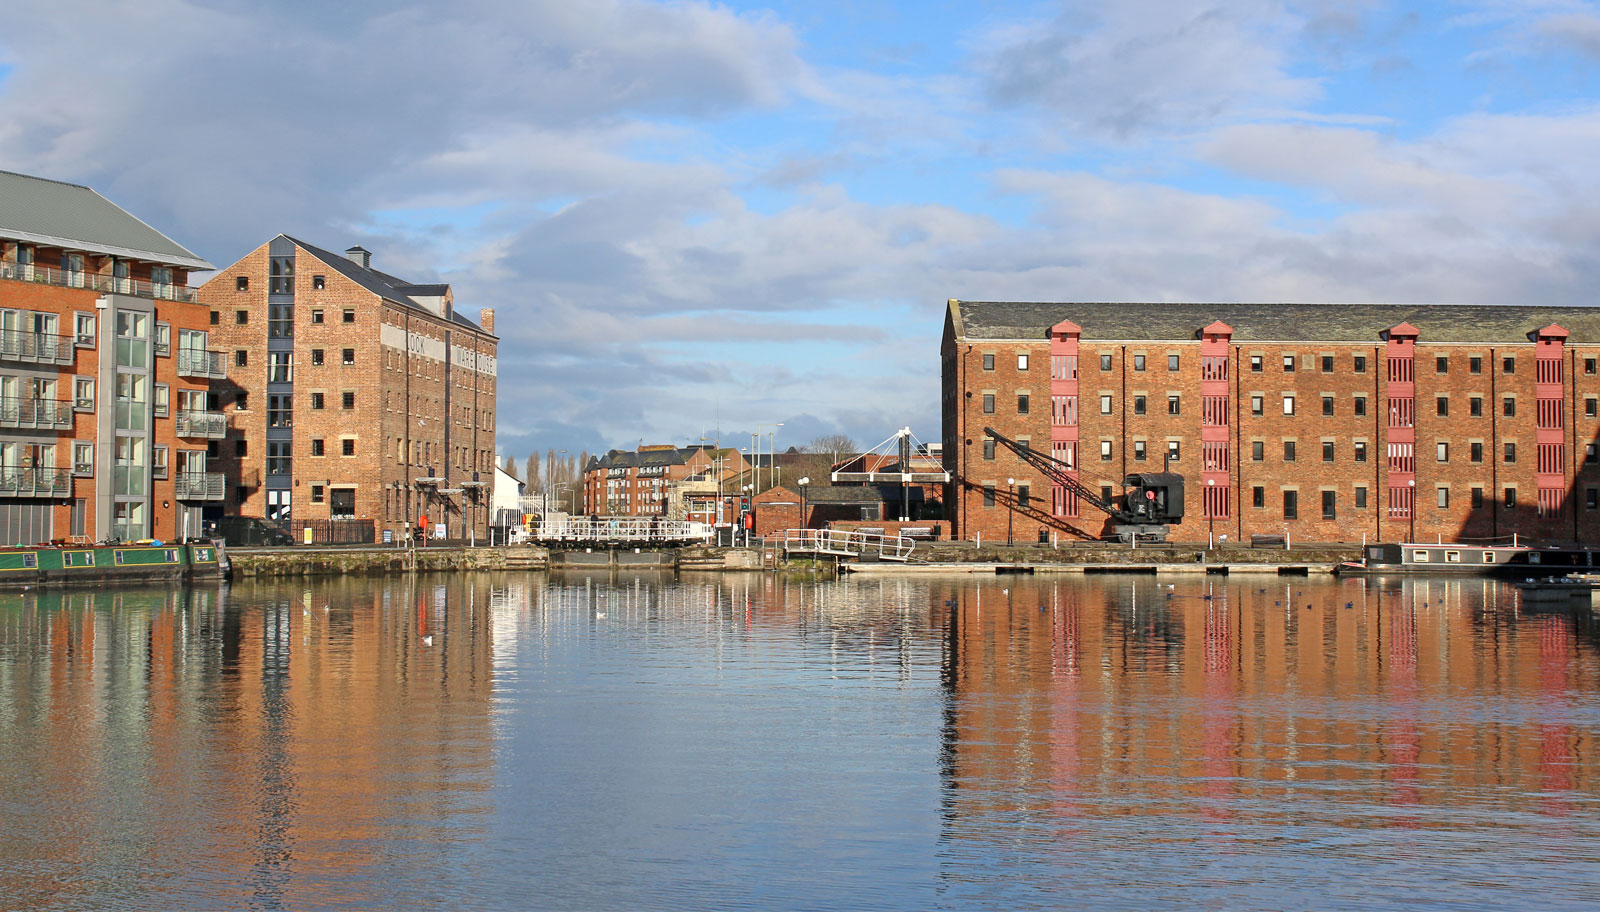 About Gloucester Quays Rotary